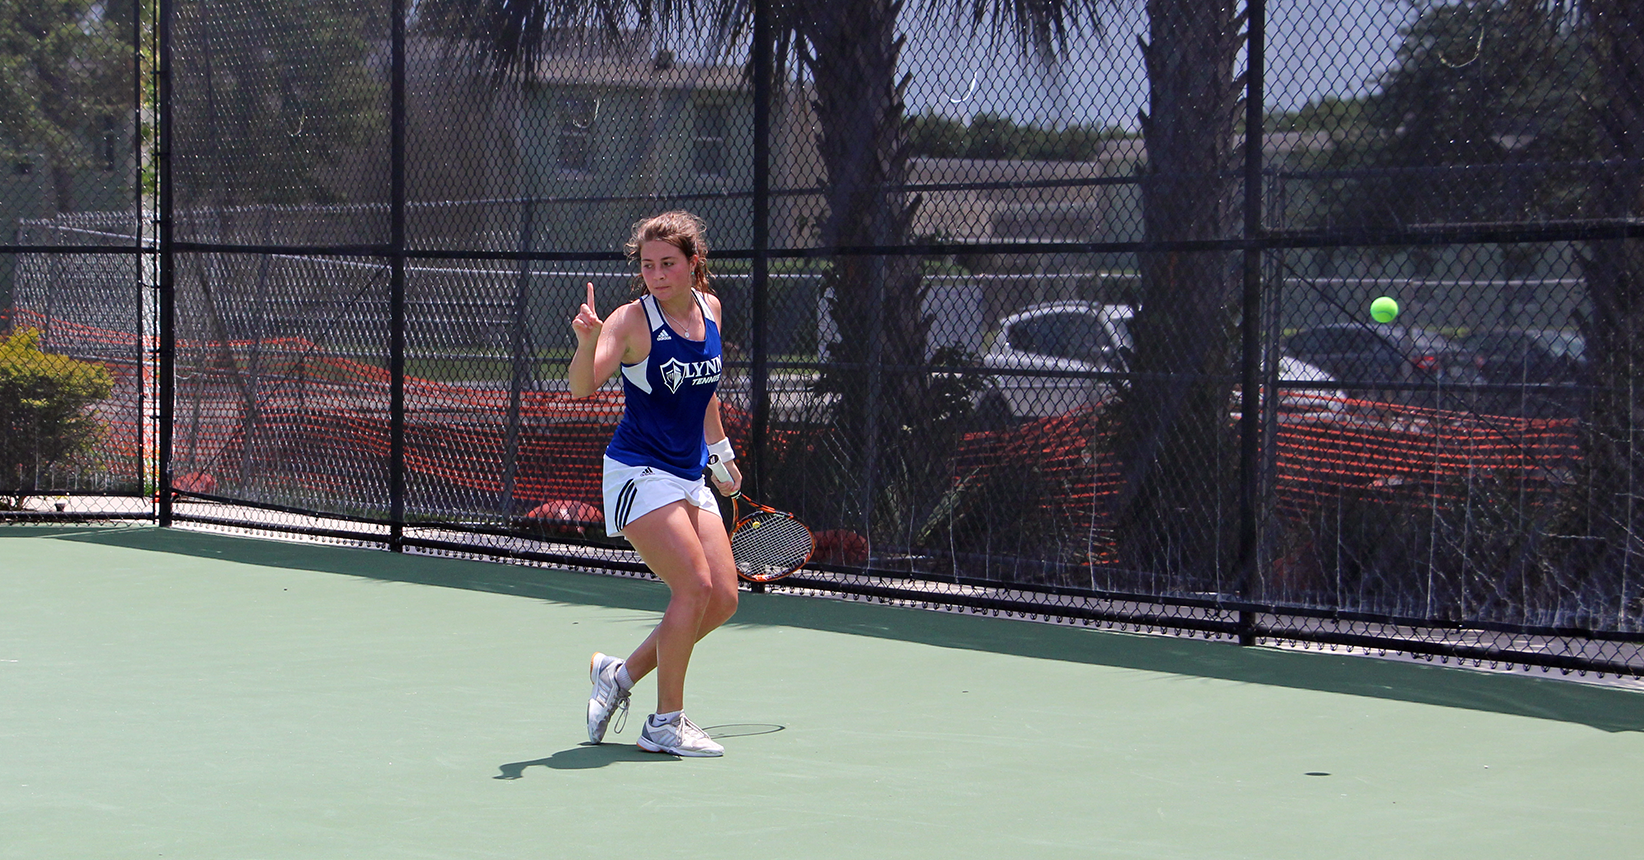 Willig Clinches Women's Tennis Upset over No. 2 Barry